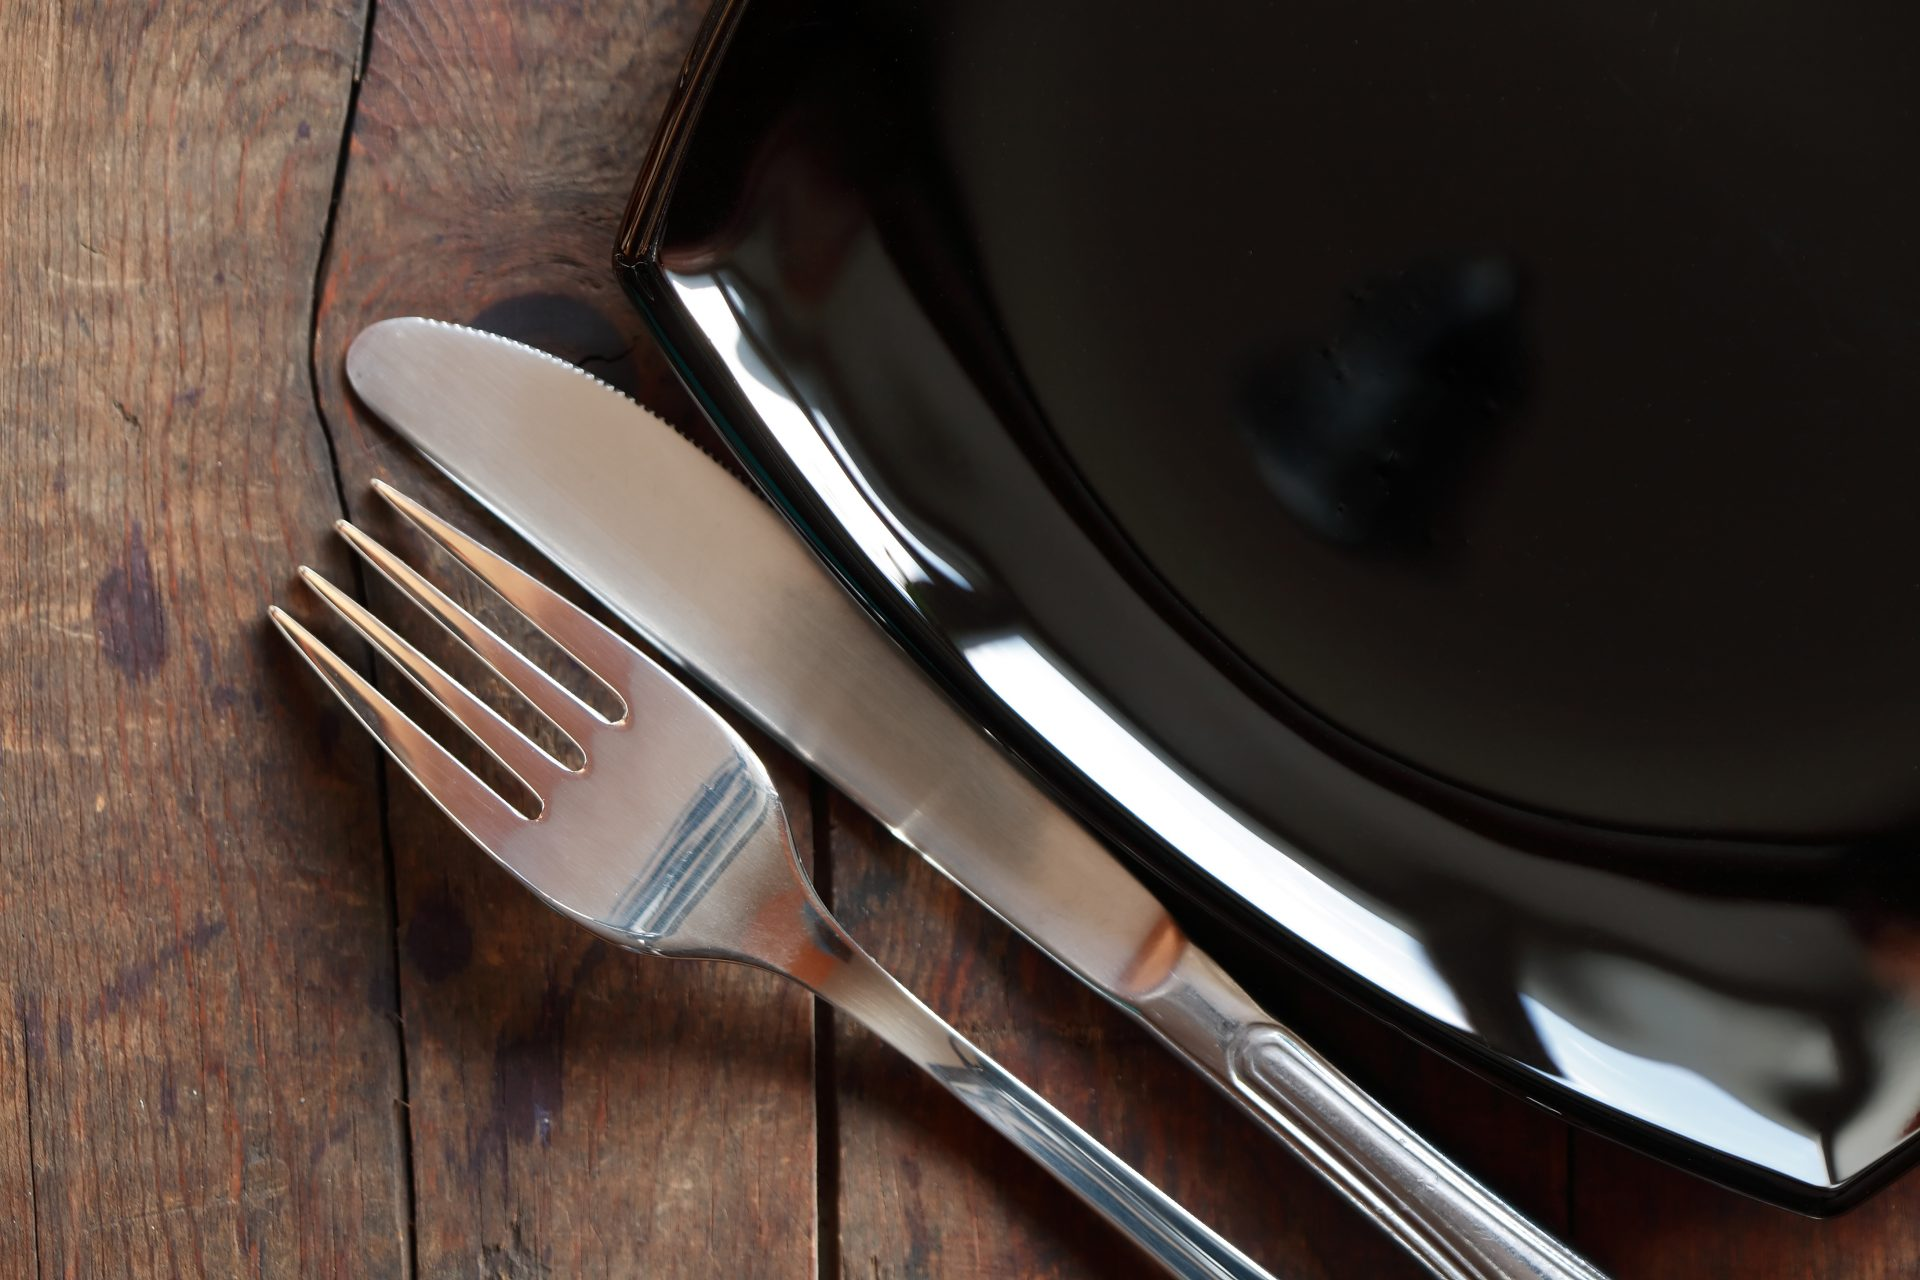 The Evolution to Stainless Steel Cutlery